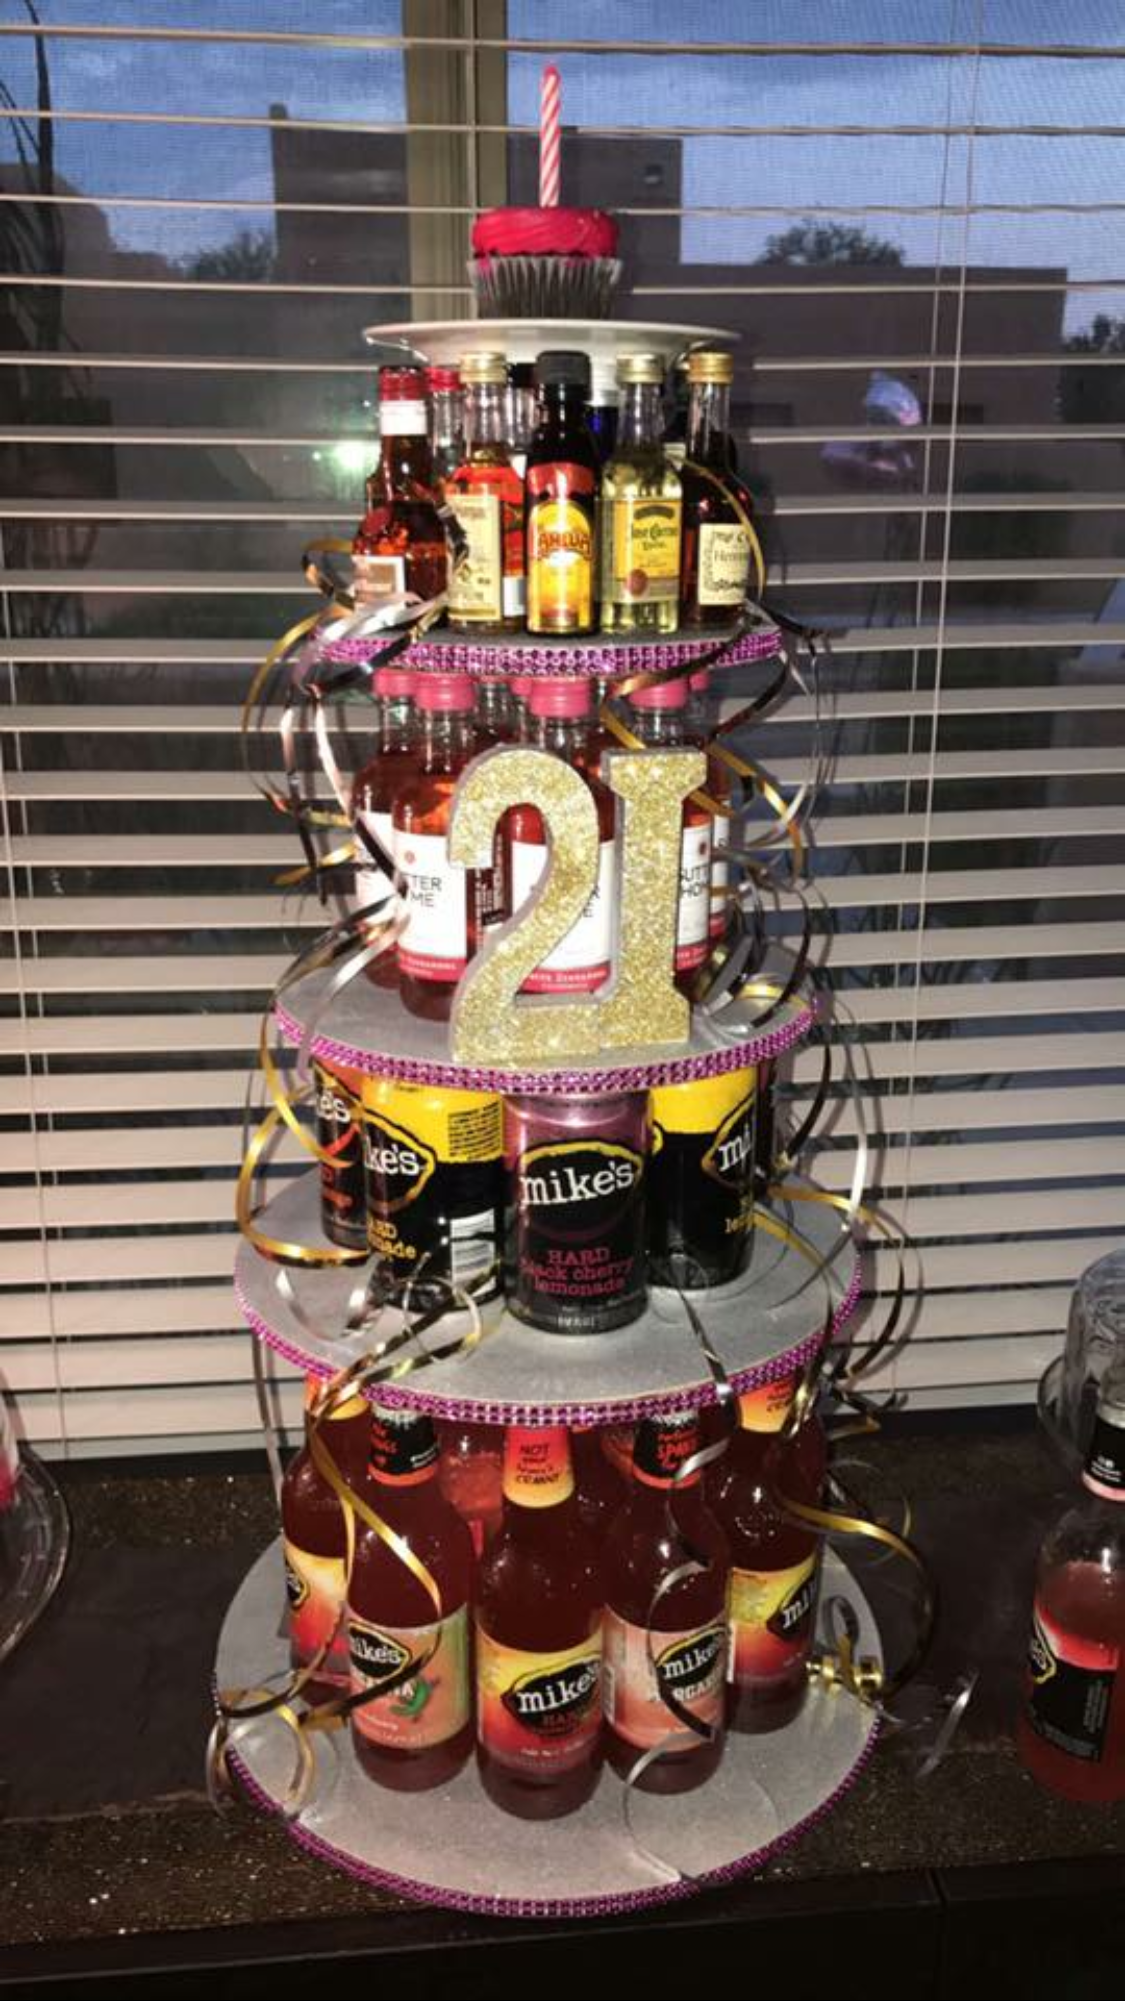 Alcohol tower cake for 21st birthday | 21st birthday party ...